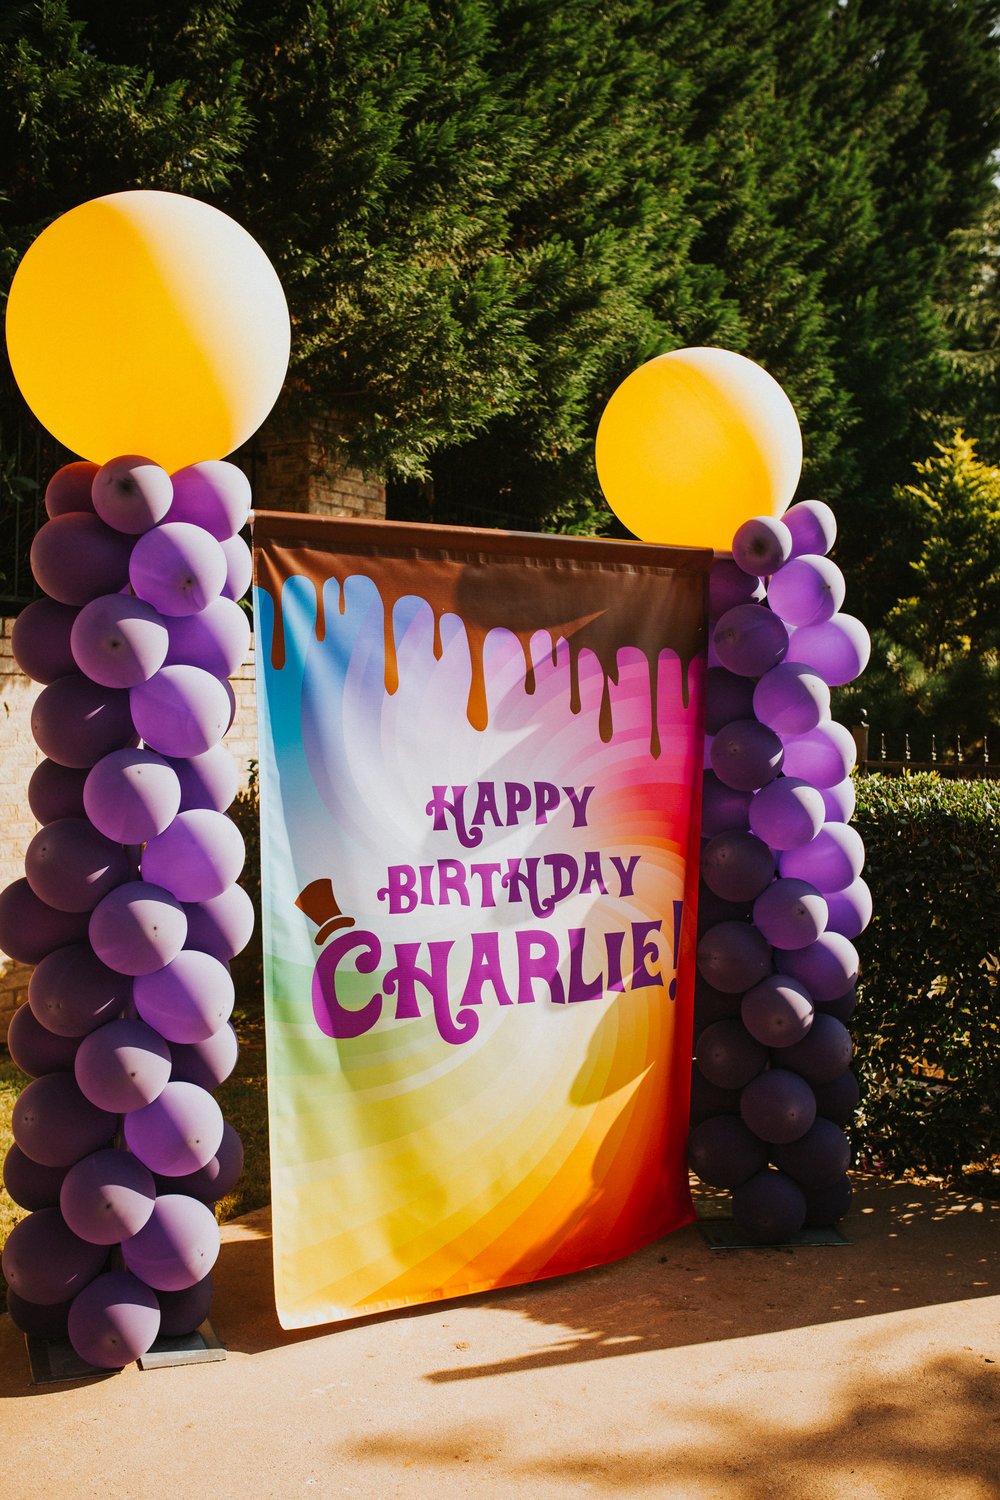 Willy Wonka Themed Birthday Party - Scarlet Plan & Design Atlanta Party Event Planners & Designers (27).jpg